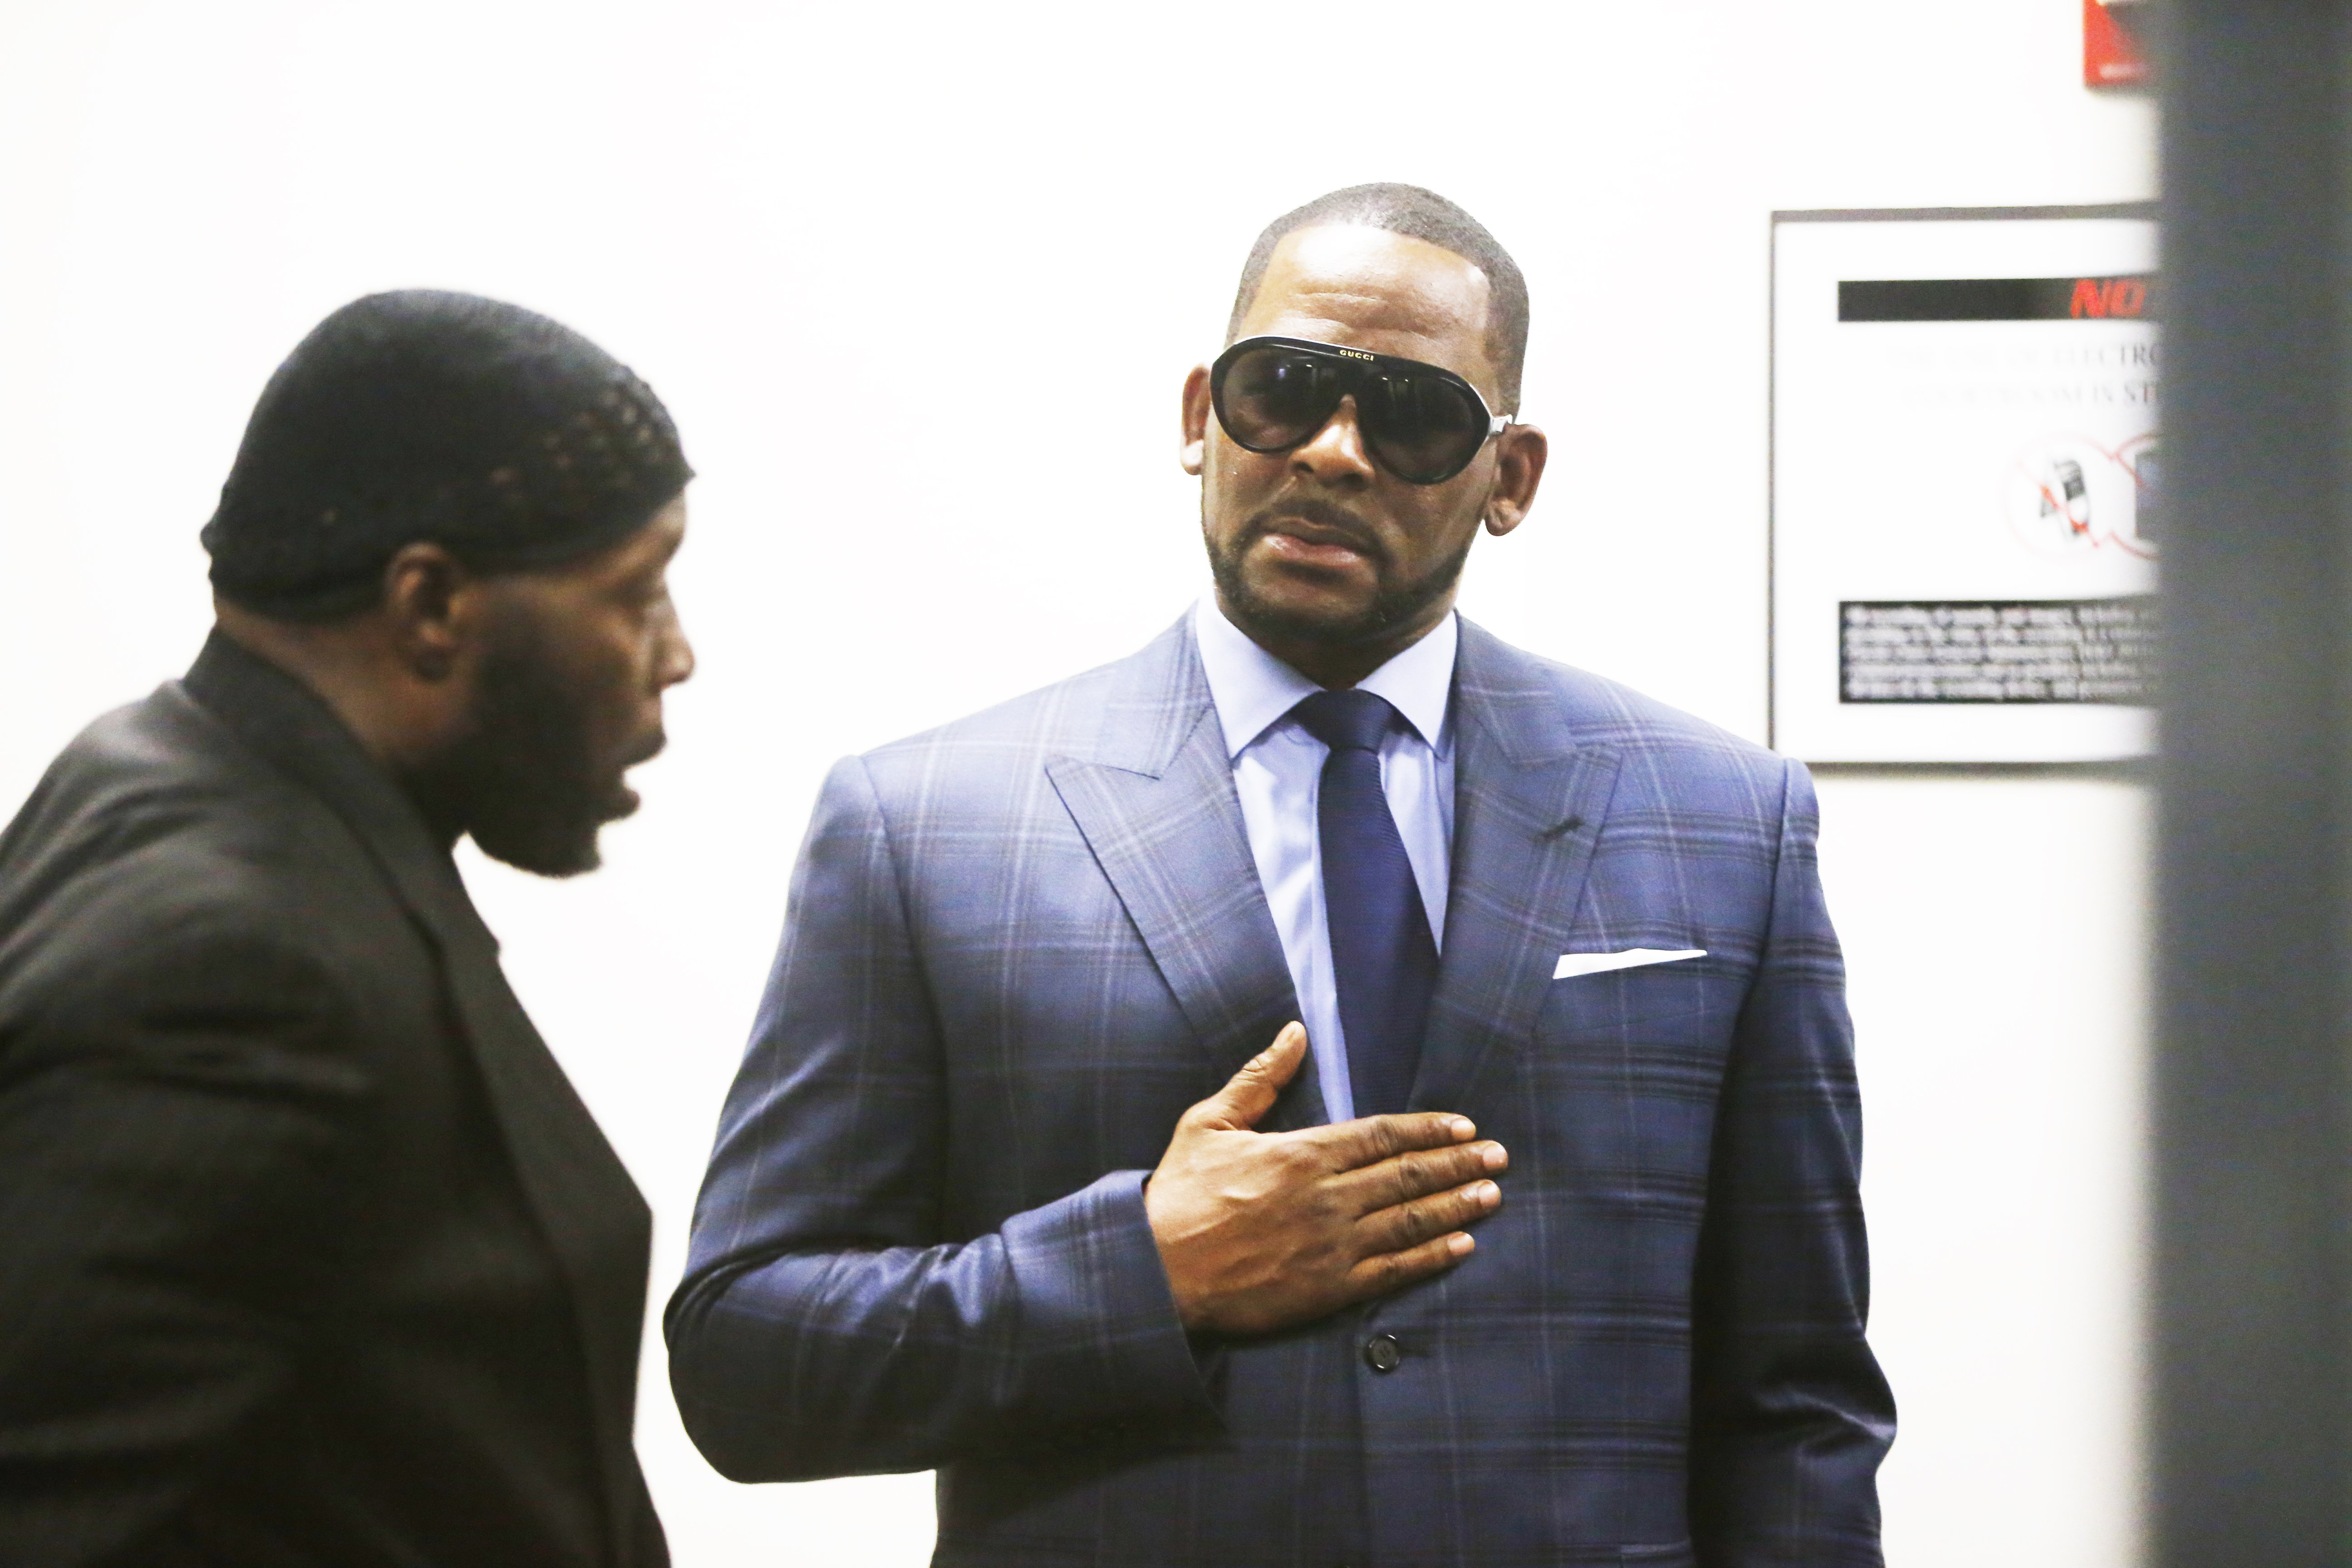 R. Kelly at the Daley Center for his child support hearing on March 6, 2019 in Chicago | Photo: Getty Images